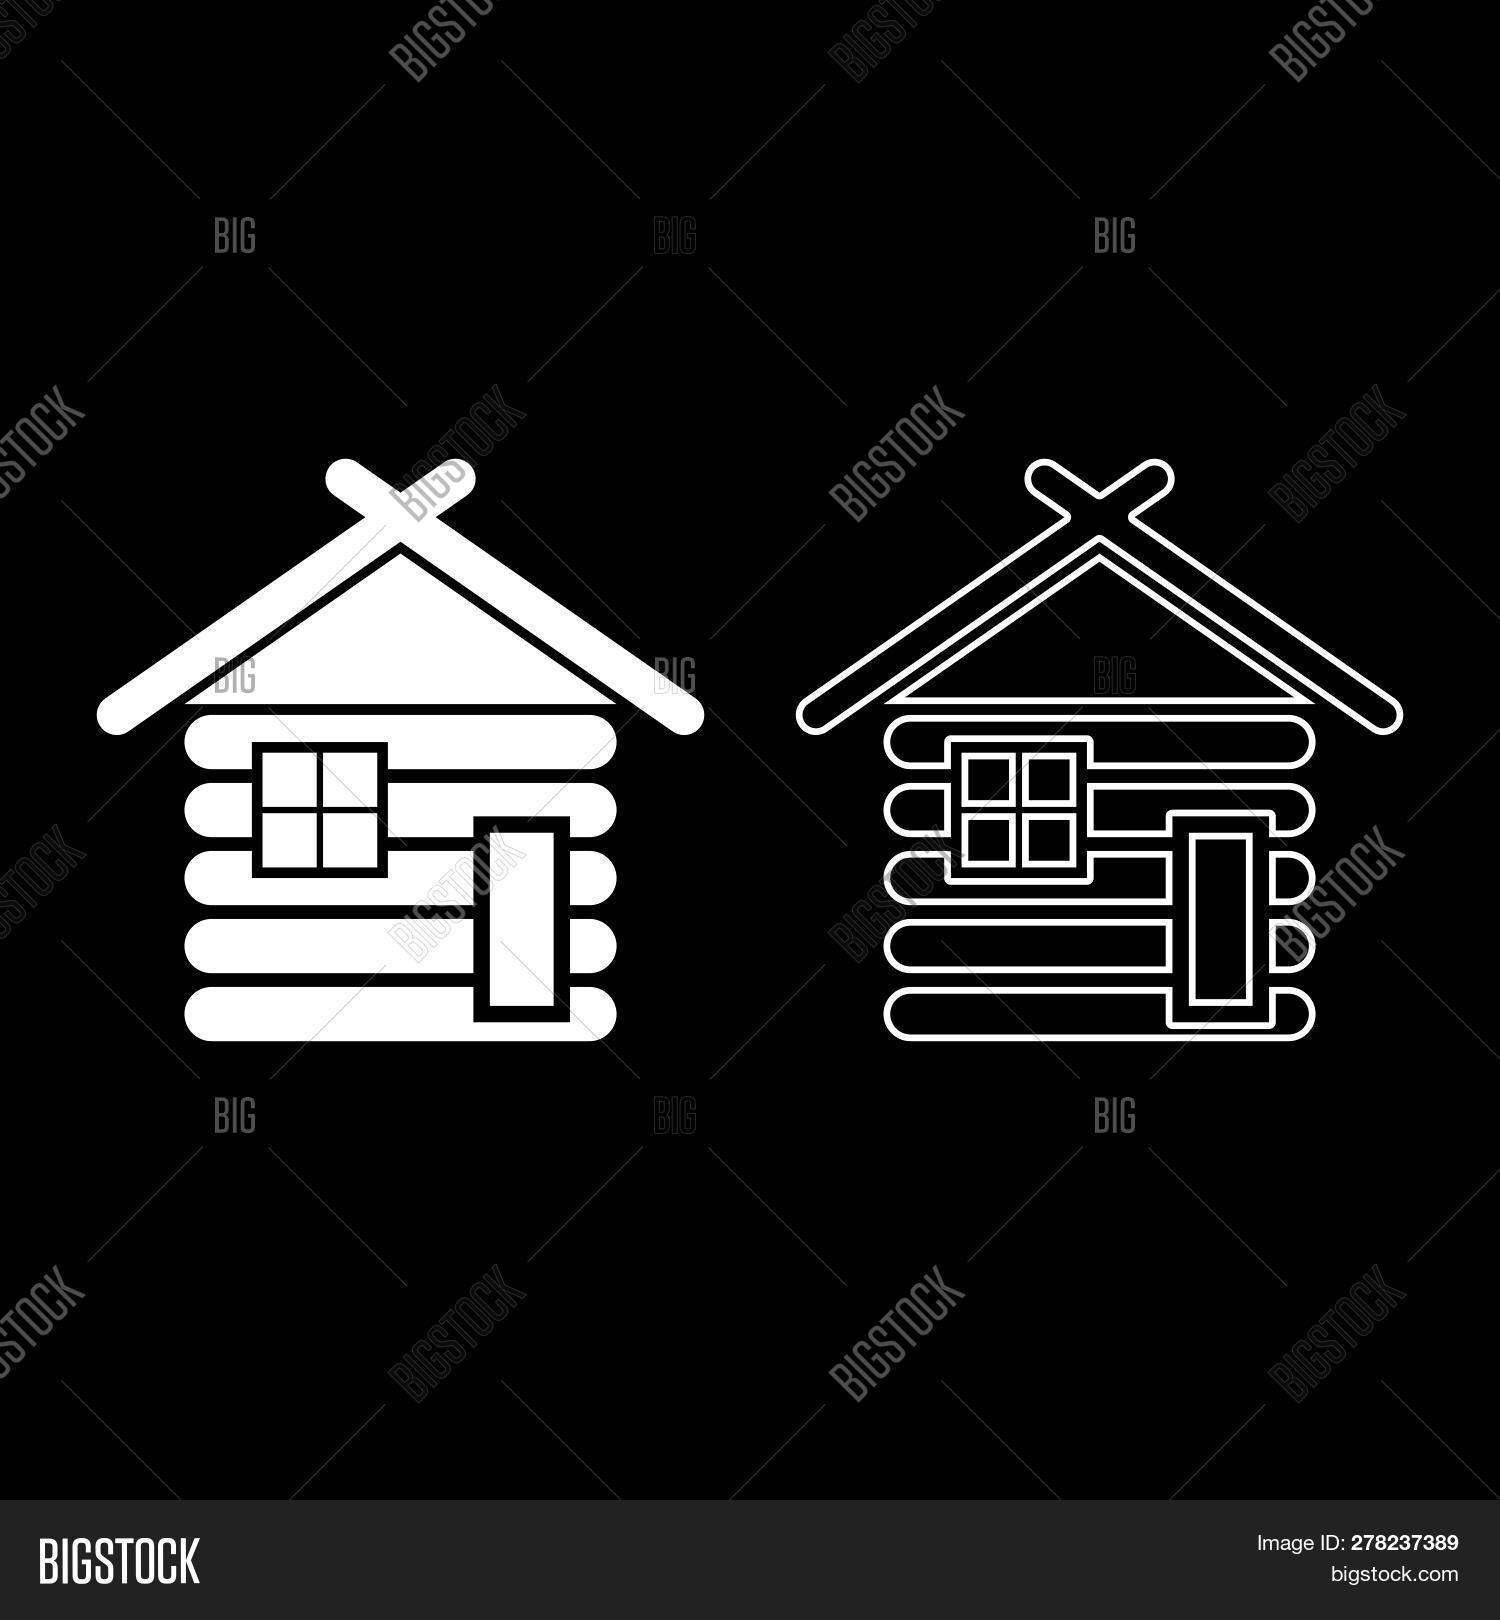 Wooden House Barn Vector & Photo (Free Trial) | Bigstock